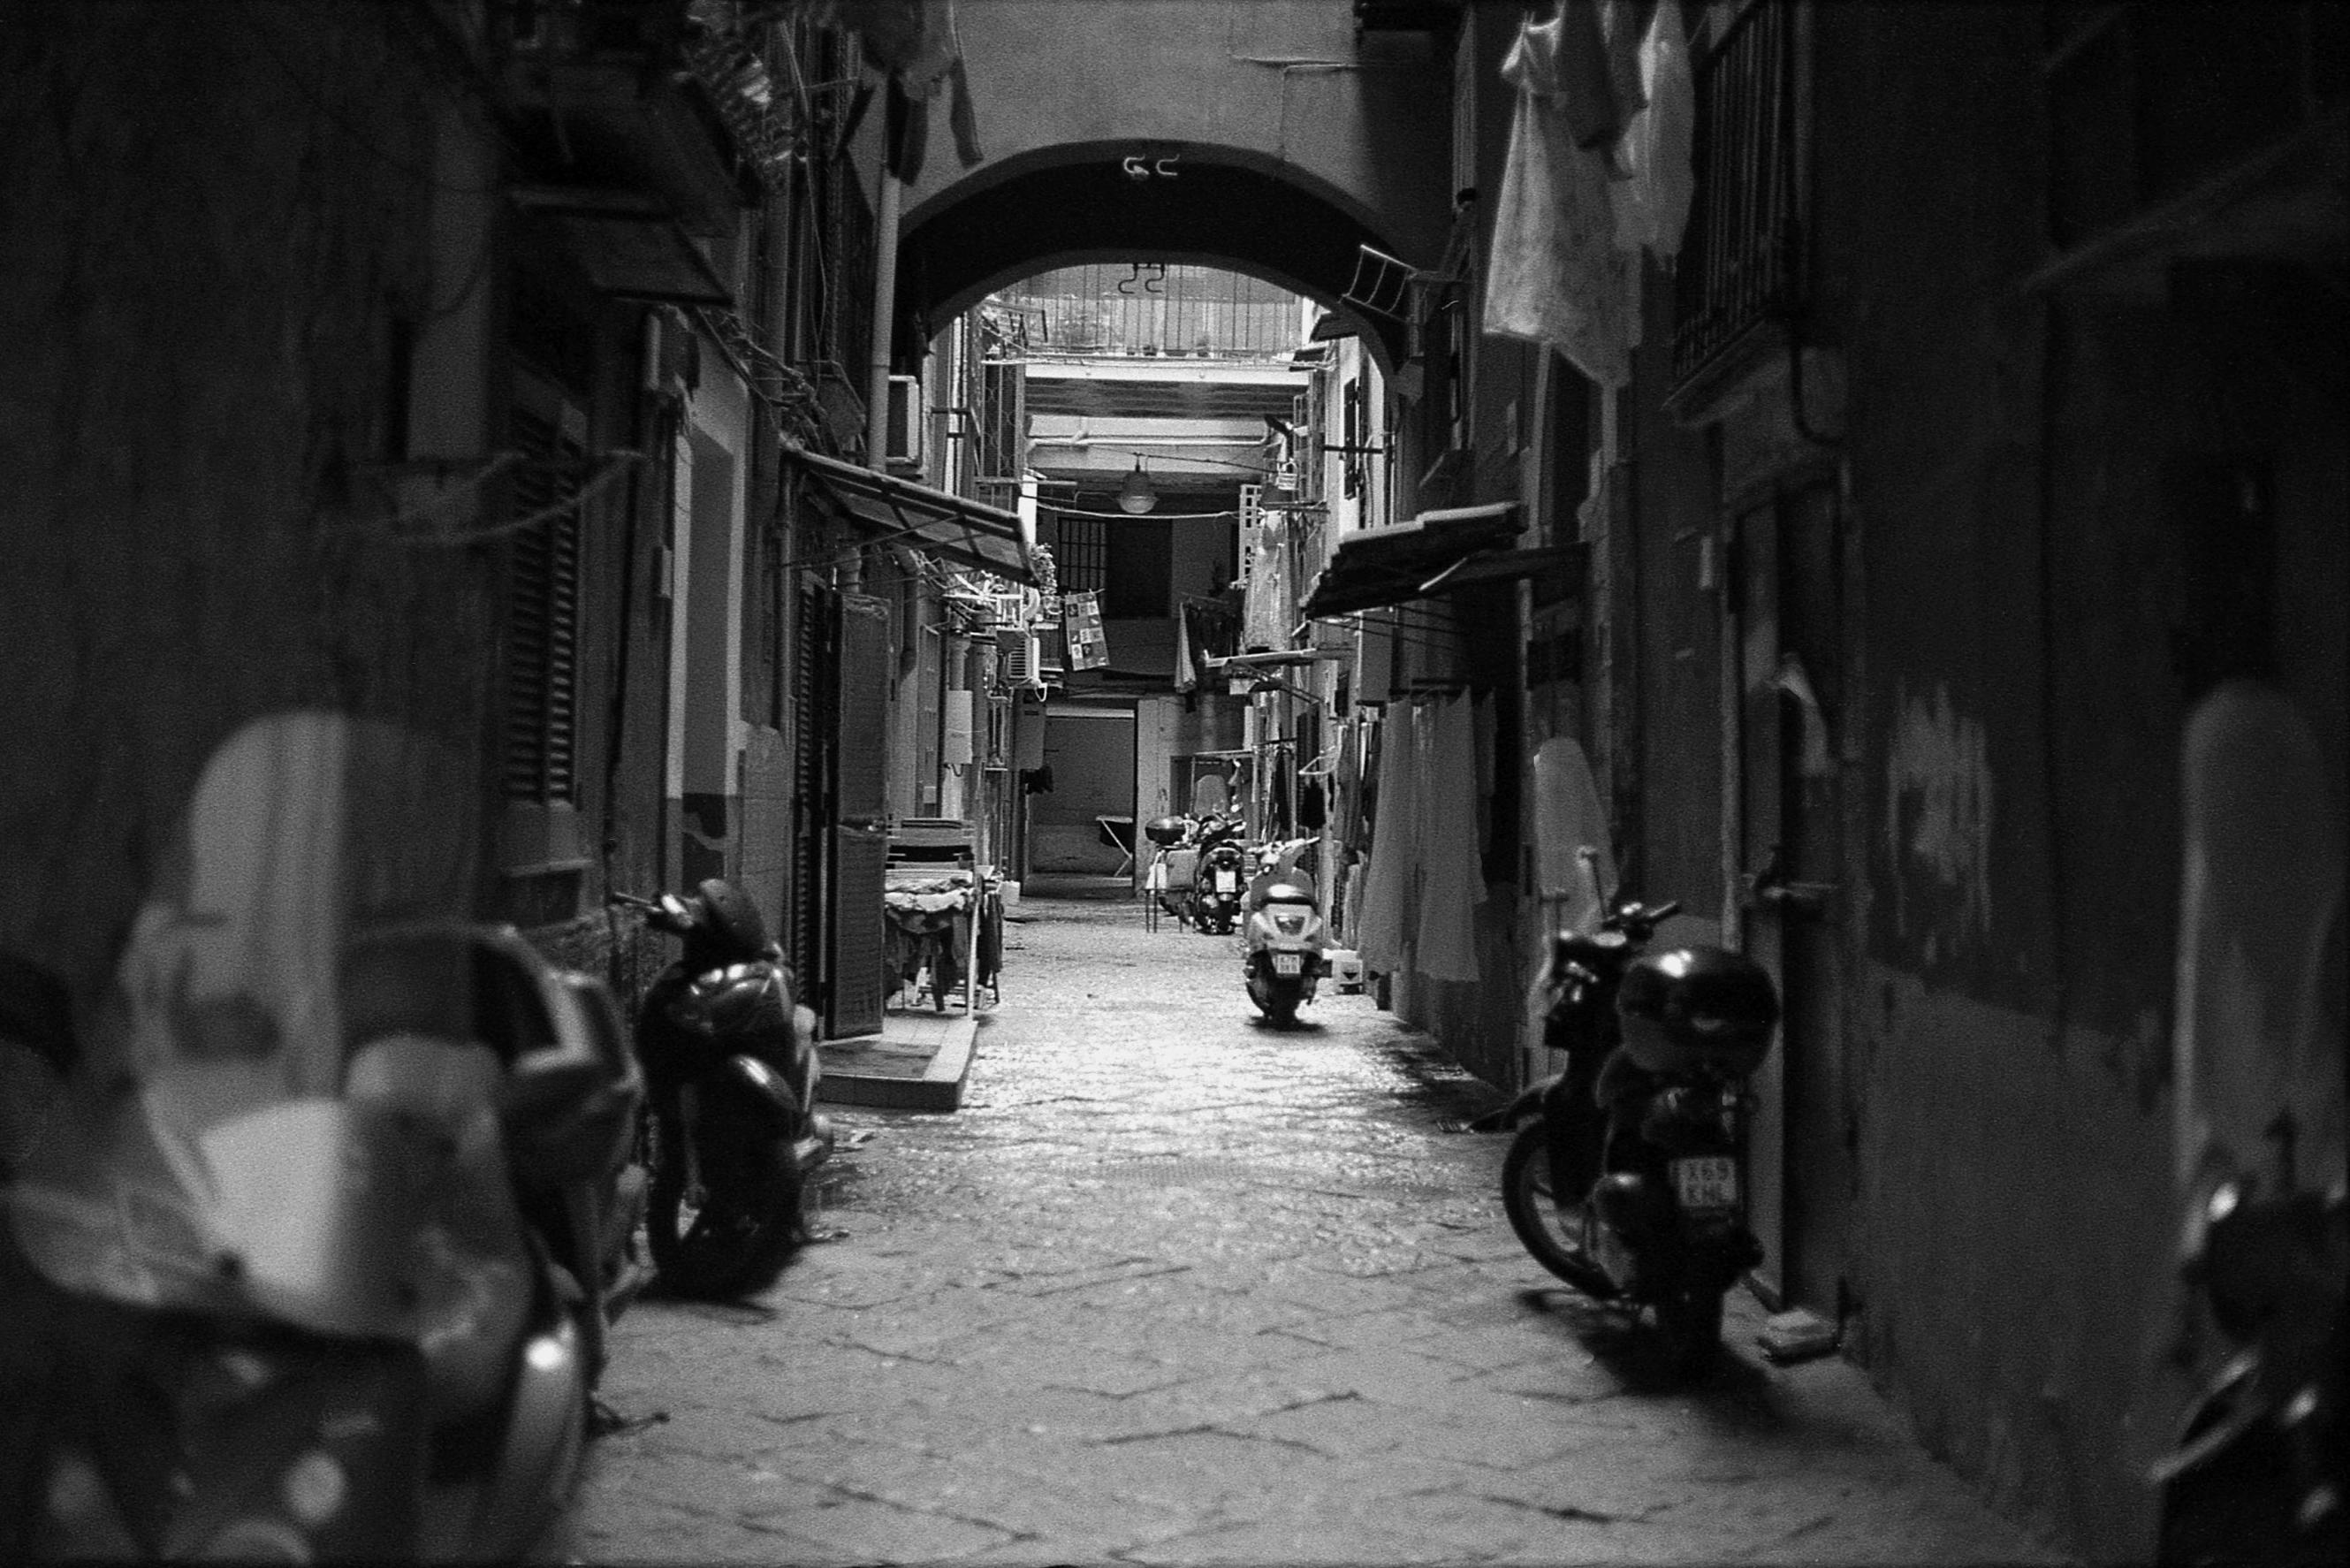 Looking down an narrow alley with motorcycles outside the doorways